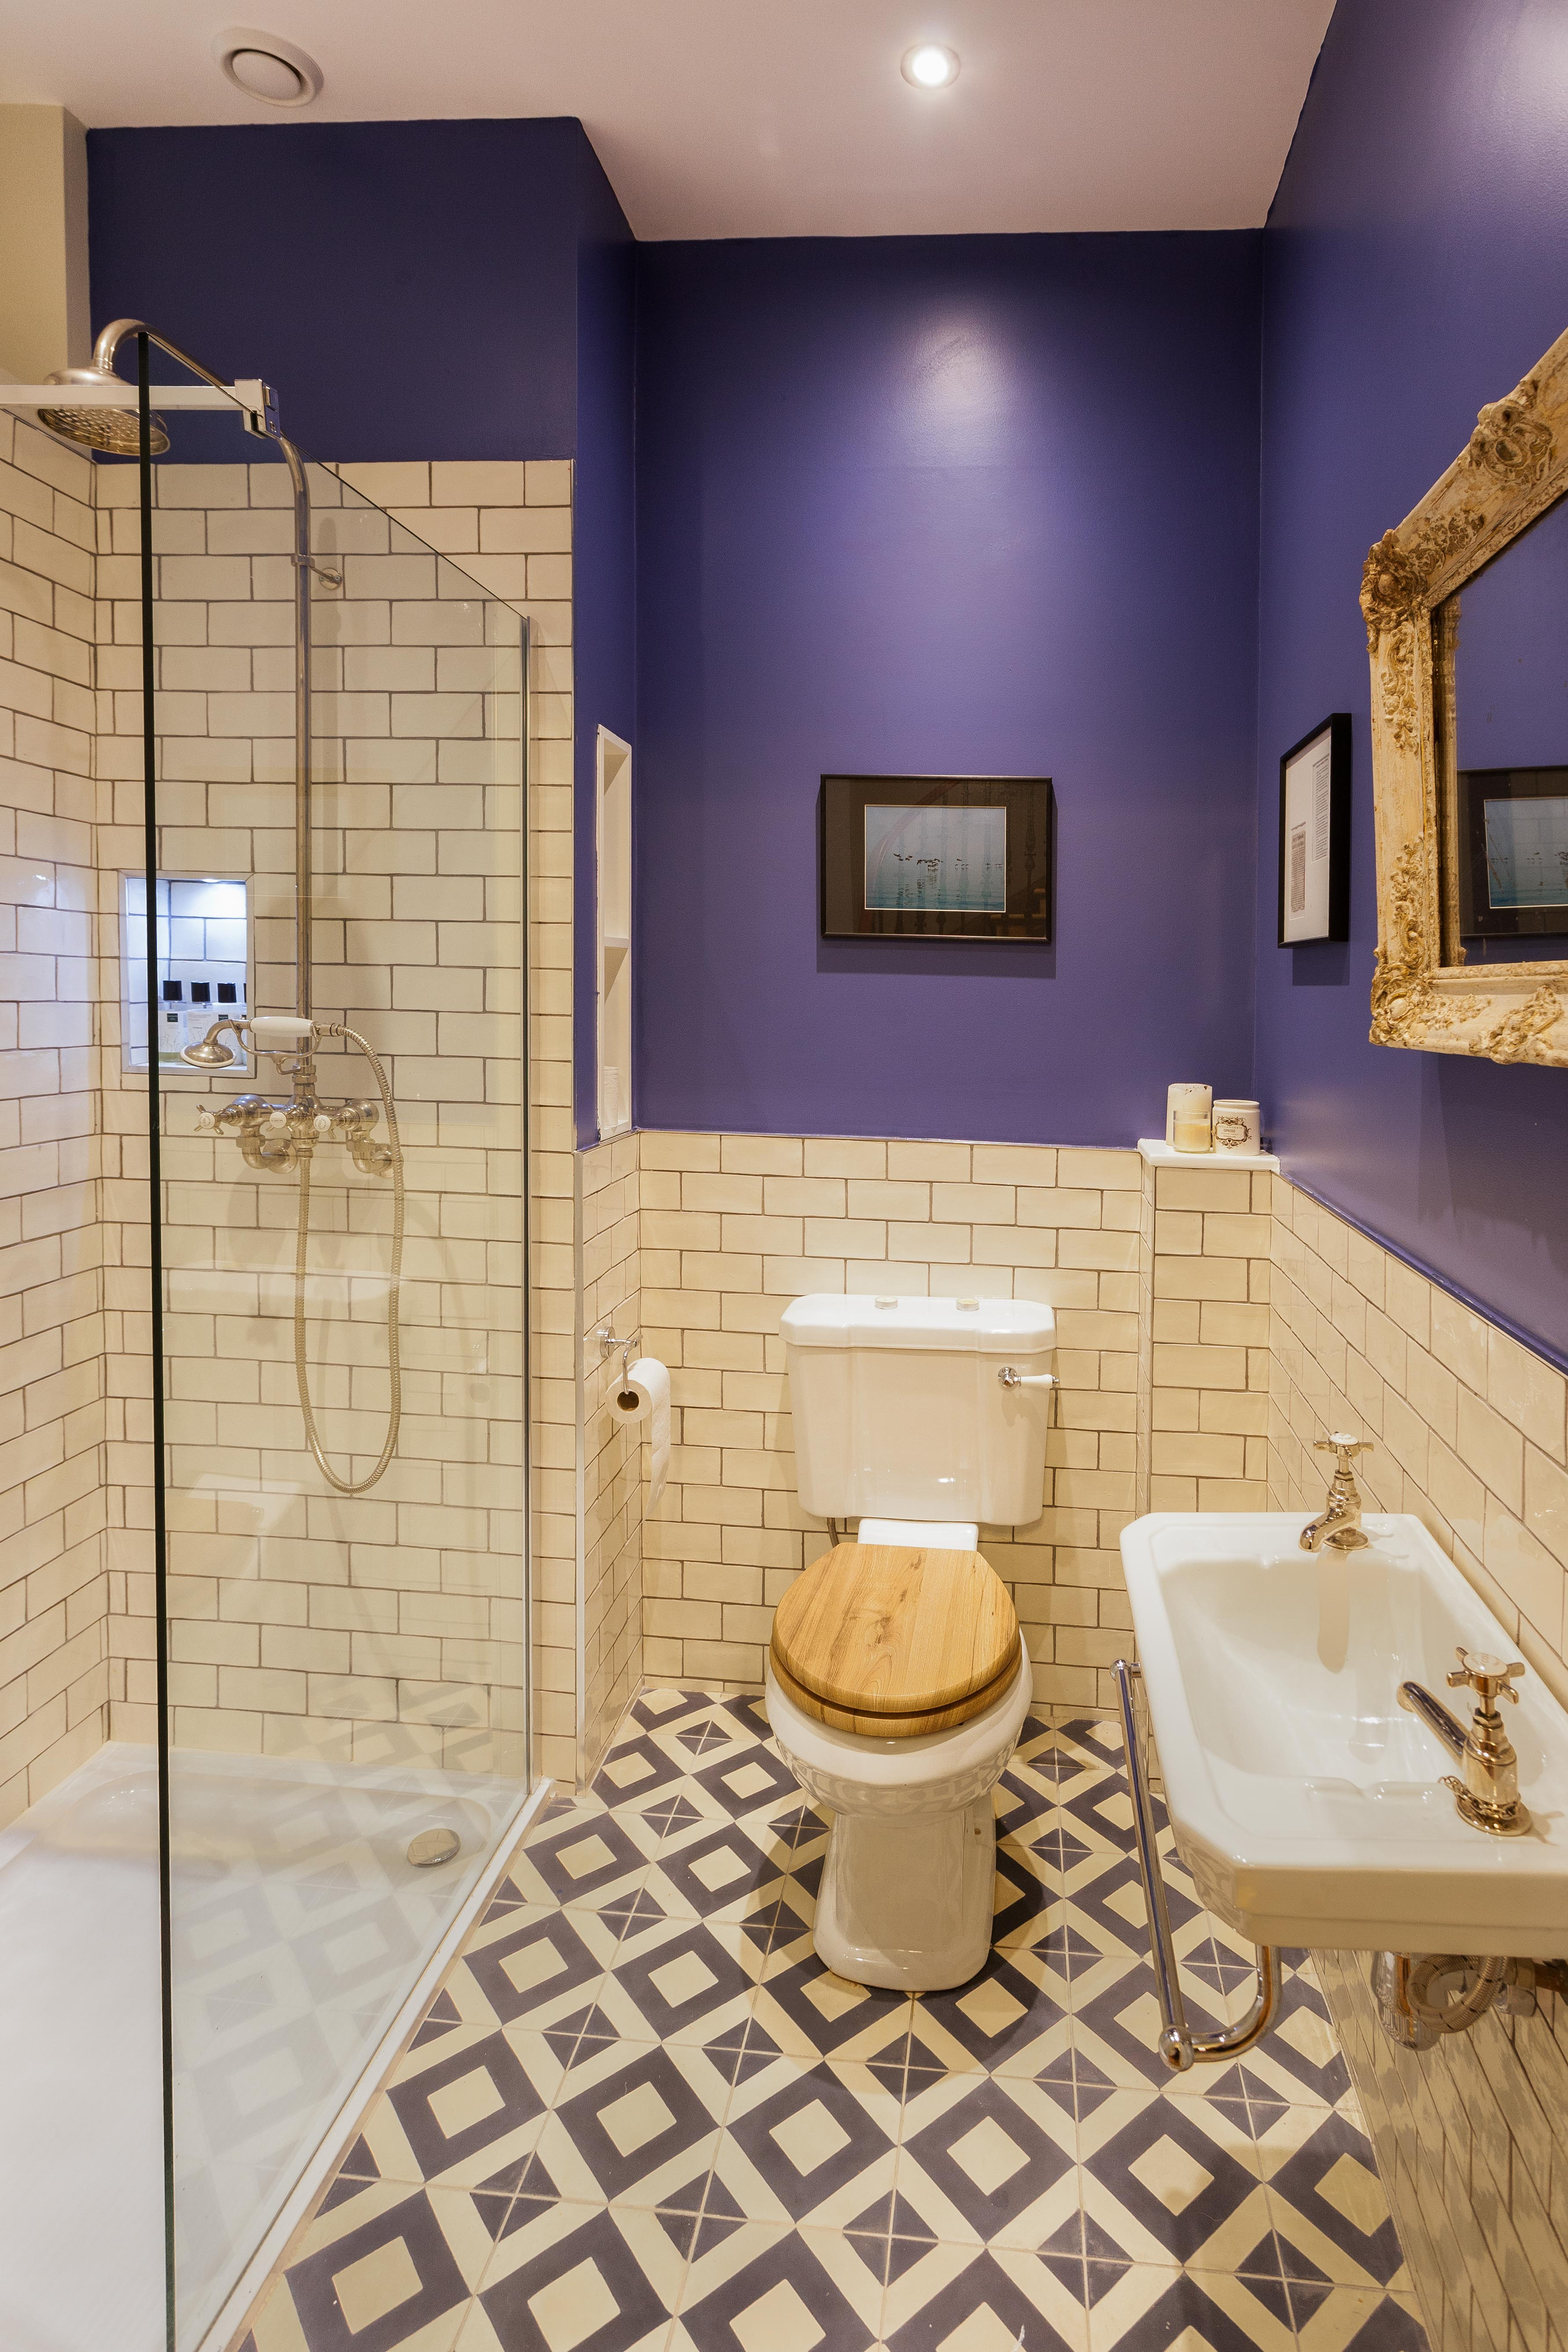 Edinburgh gold shower room with basin, toilet and exposed shower valve.